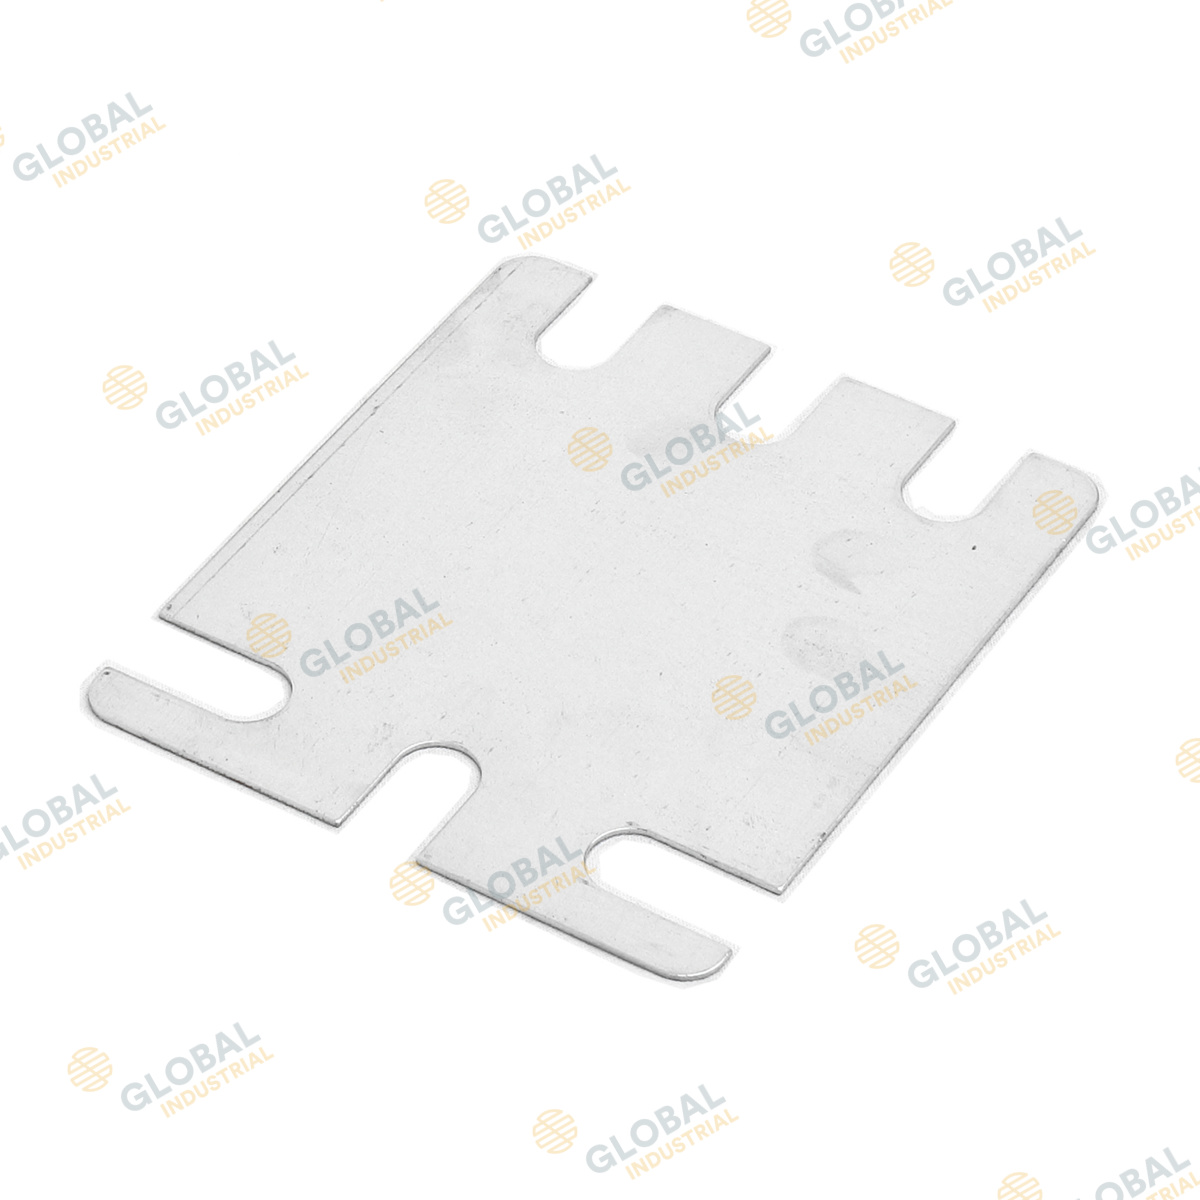 Universal shim plate for heavy duty foot plate